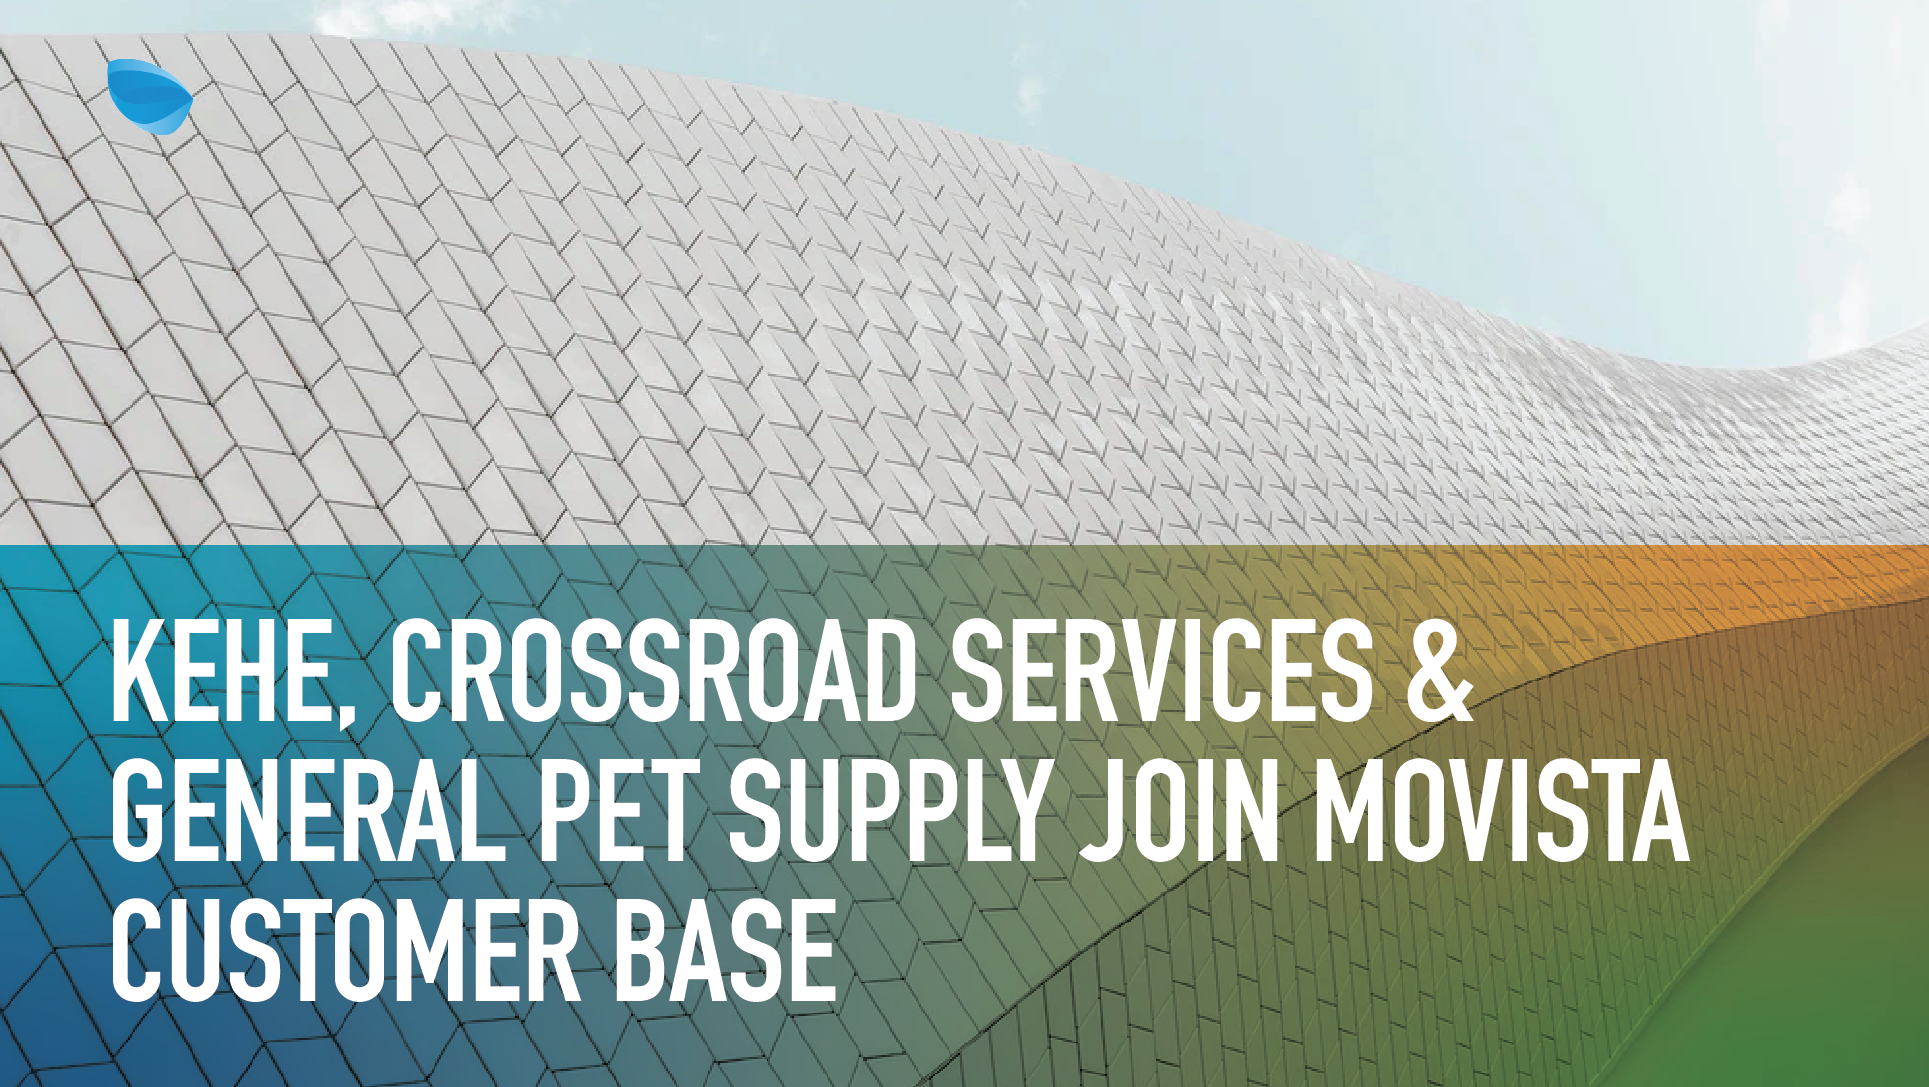 KeHE, Crossroad Services, General Pet Supply Focus on Innovation